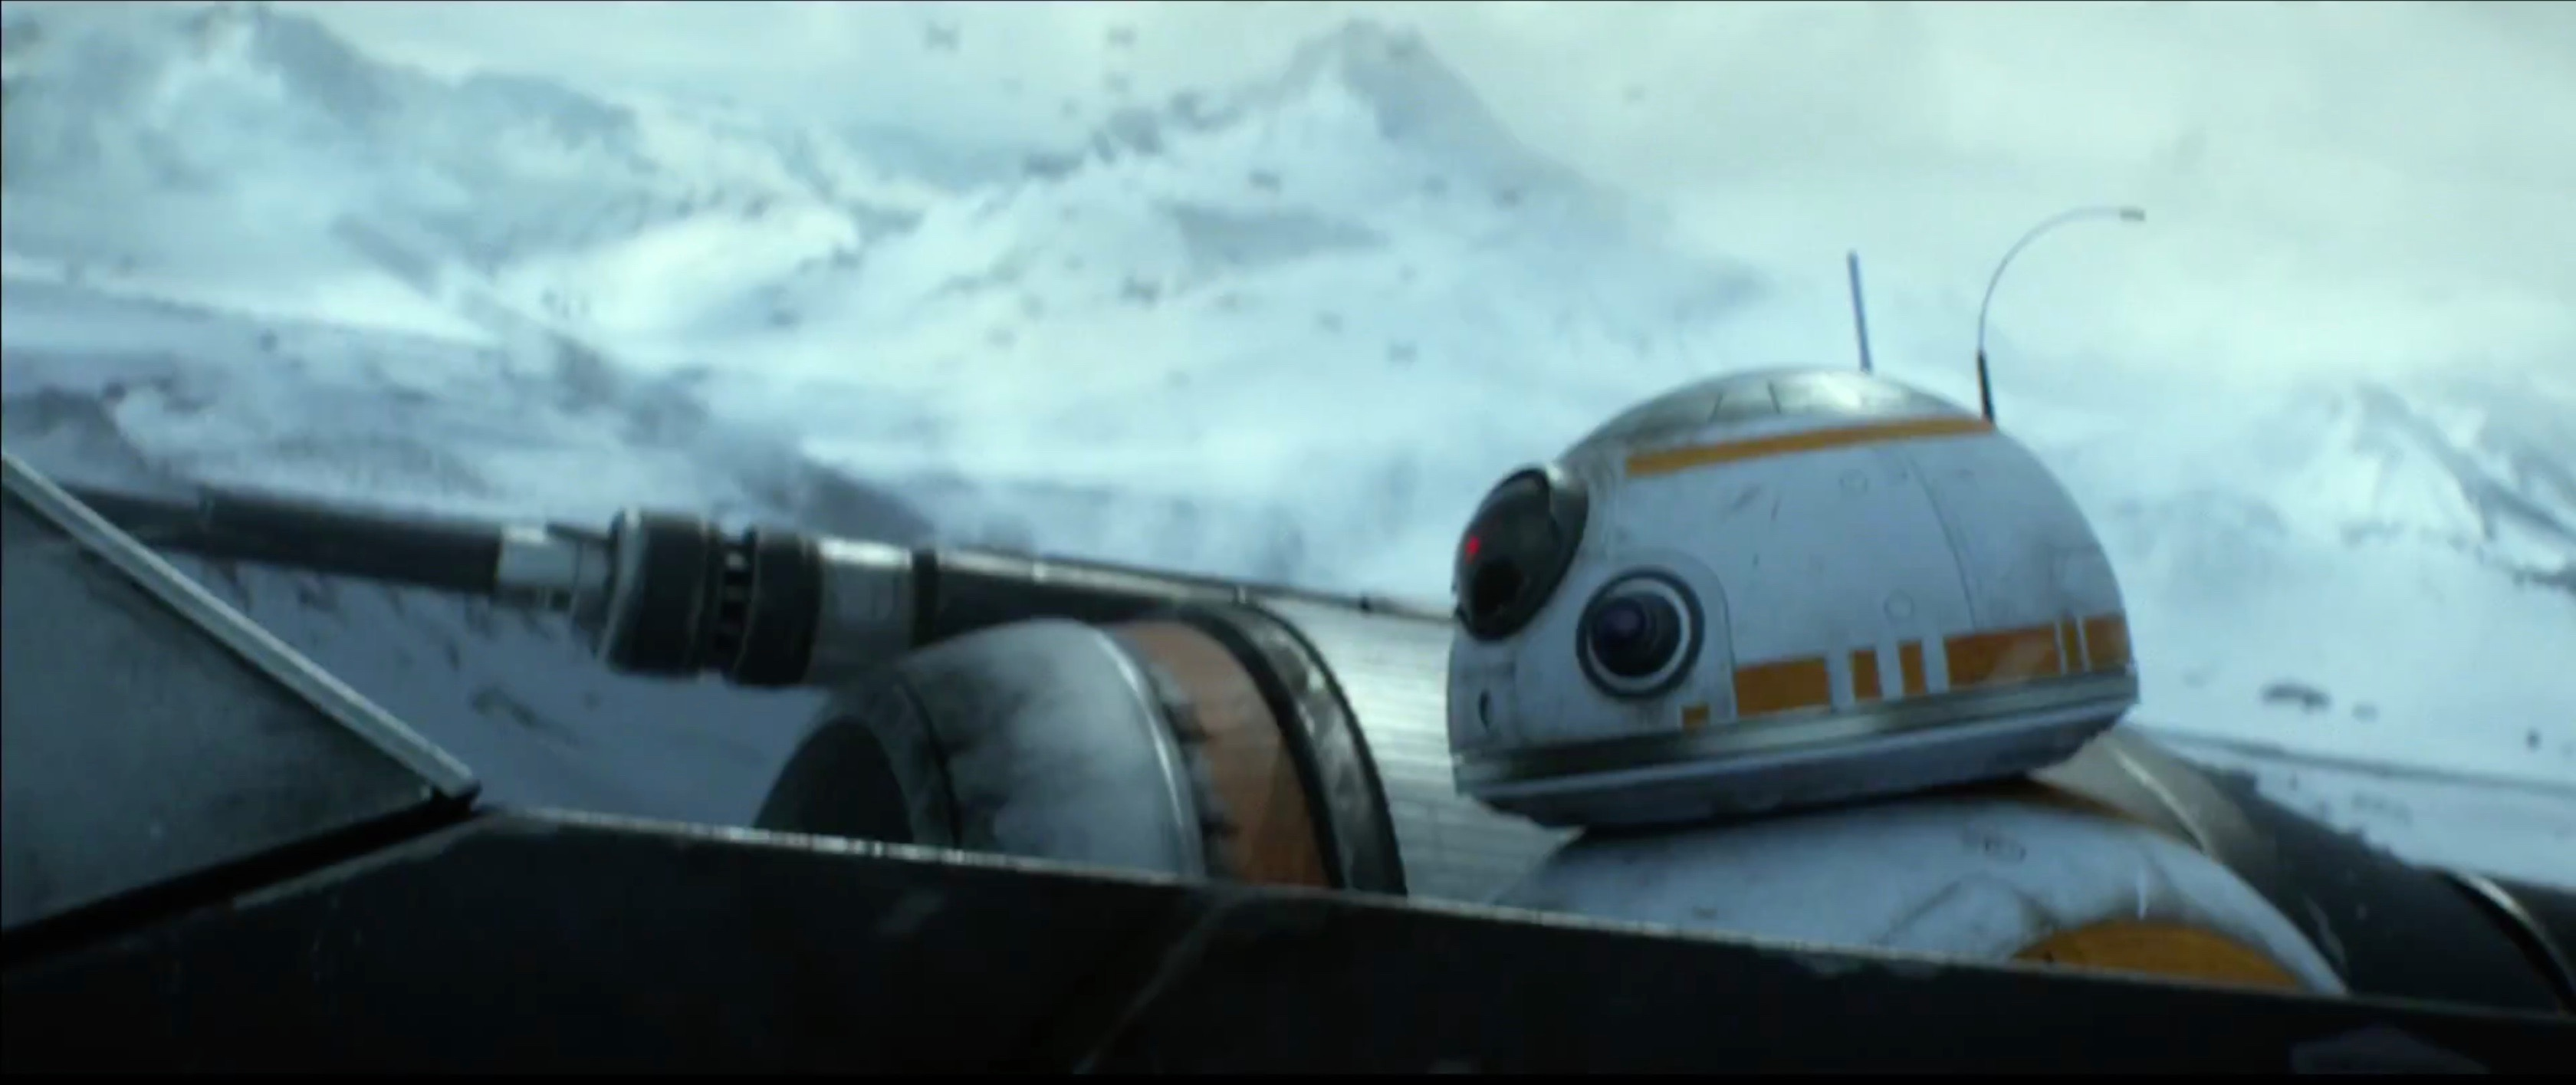 Star Wars VII Trailer Analysis - 14 of 20